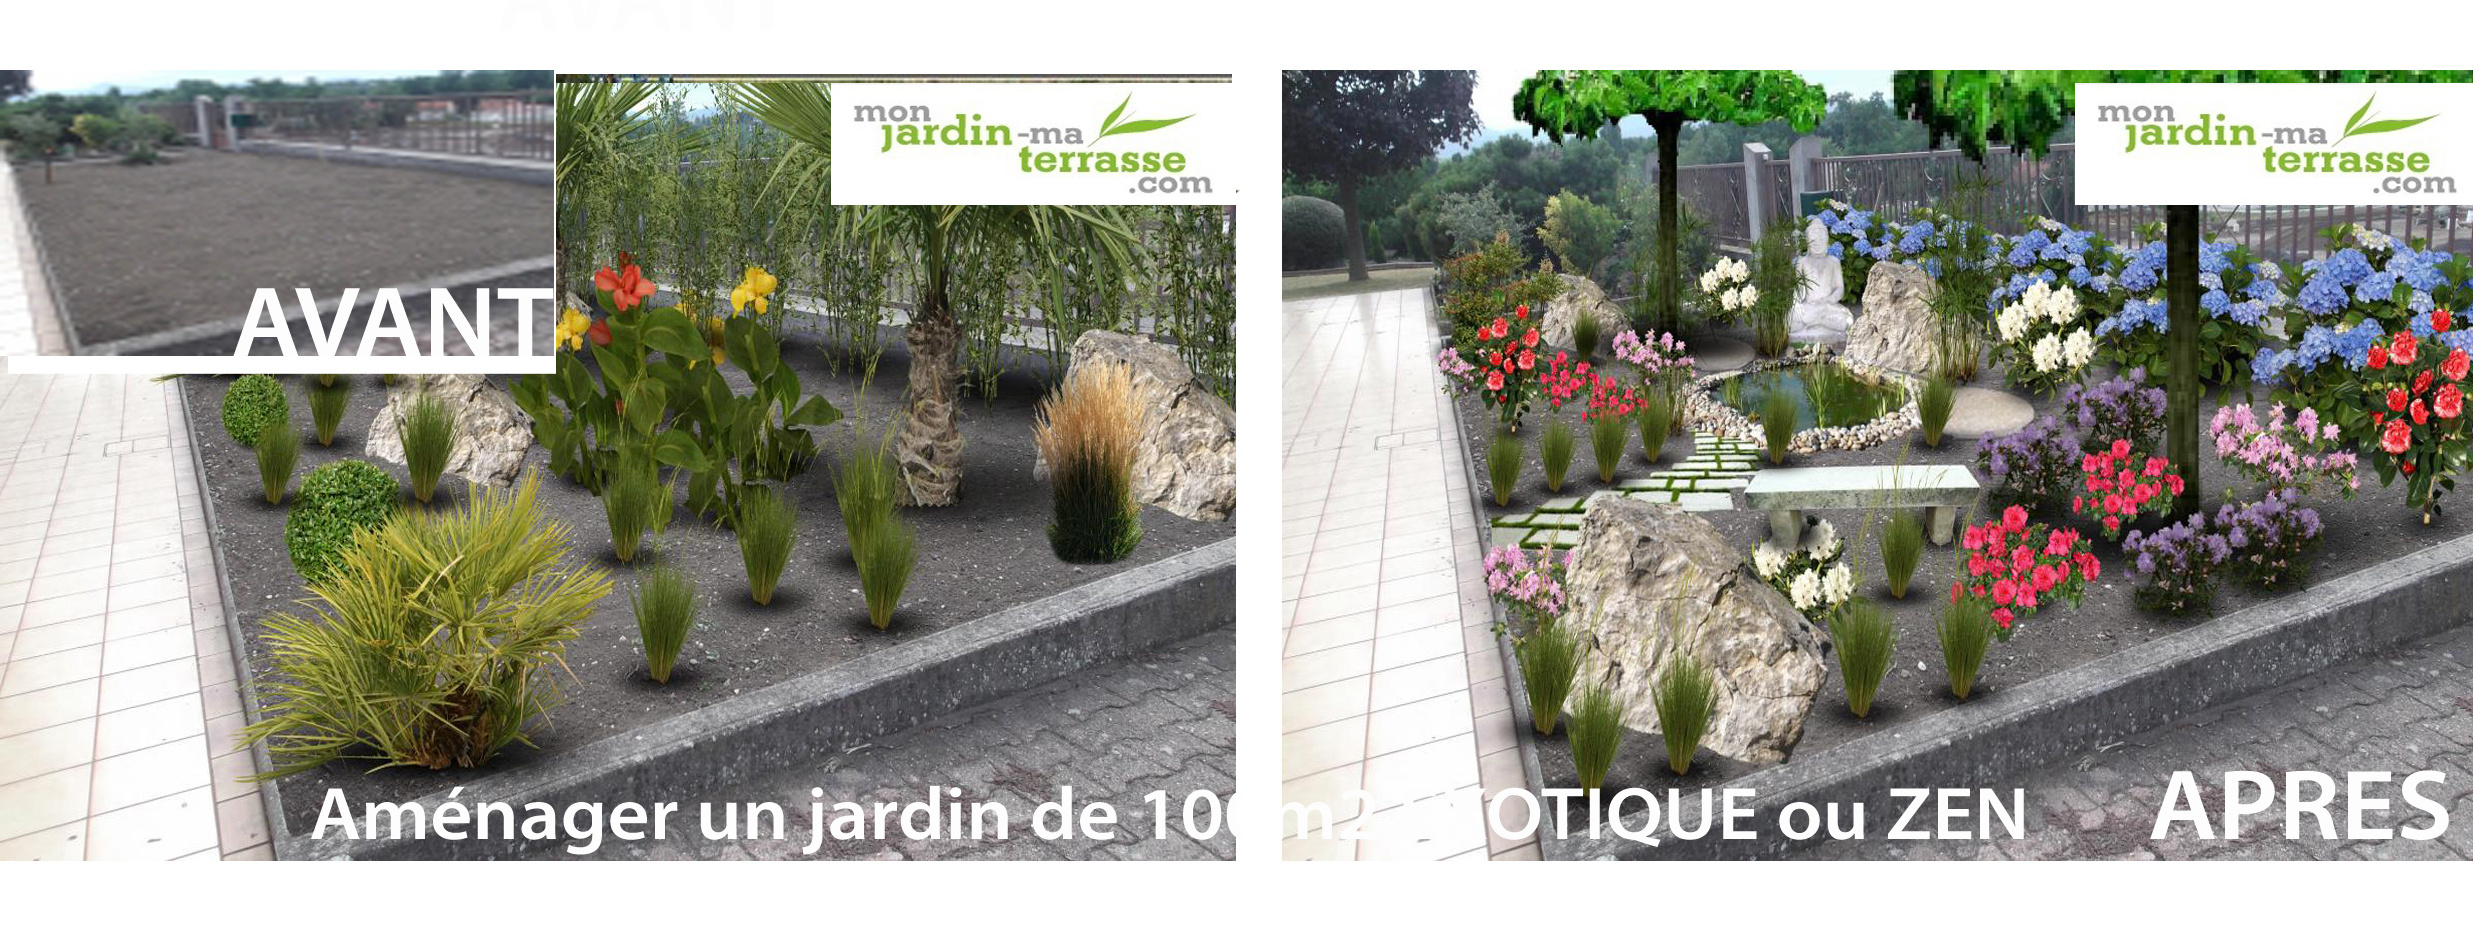 amenagement jardin de 100m2